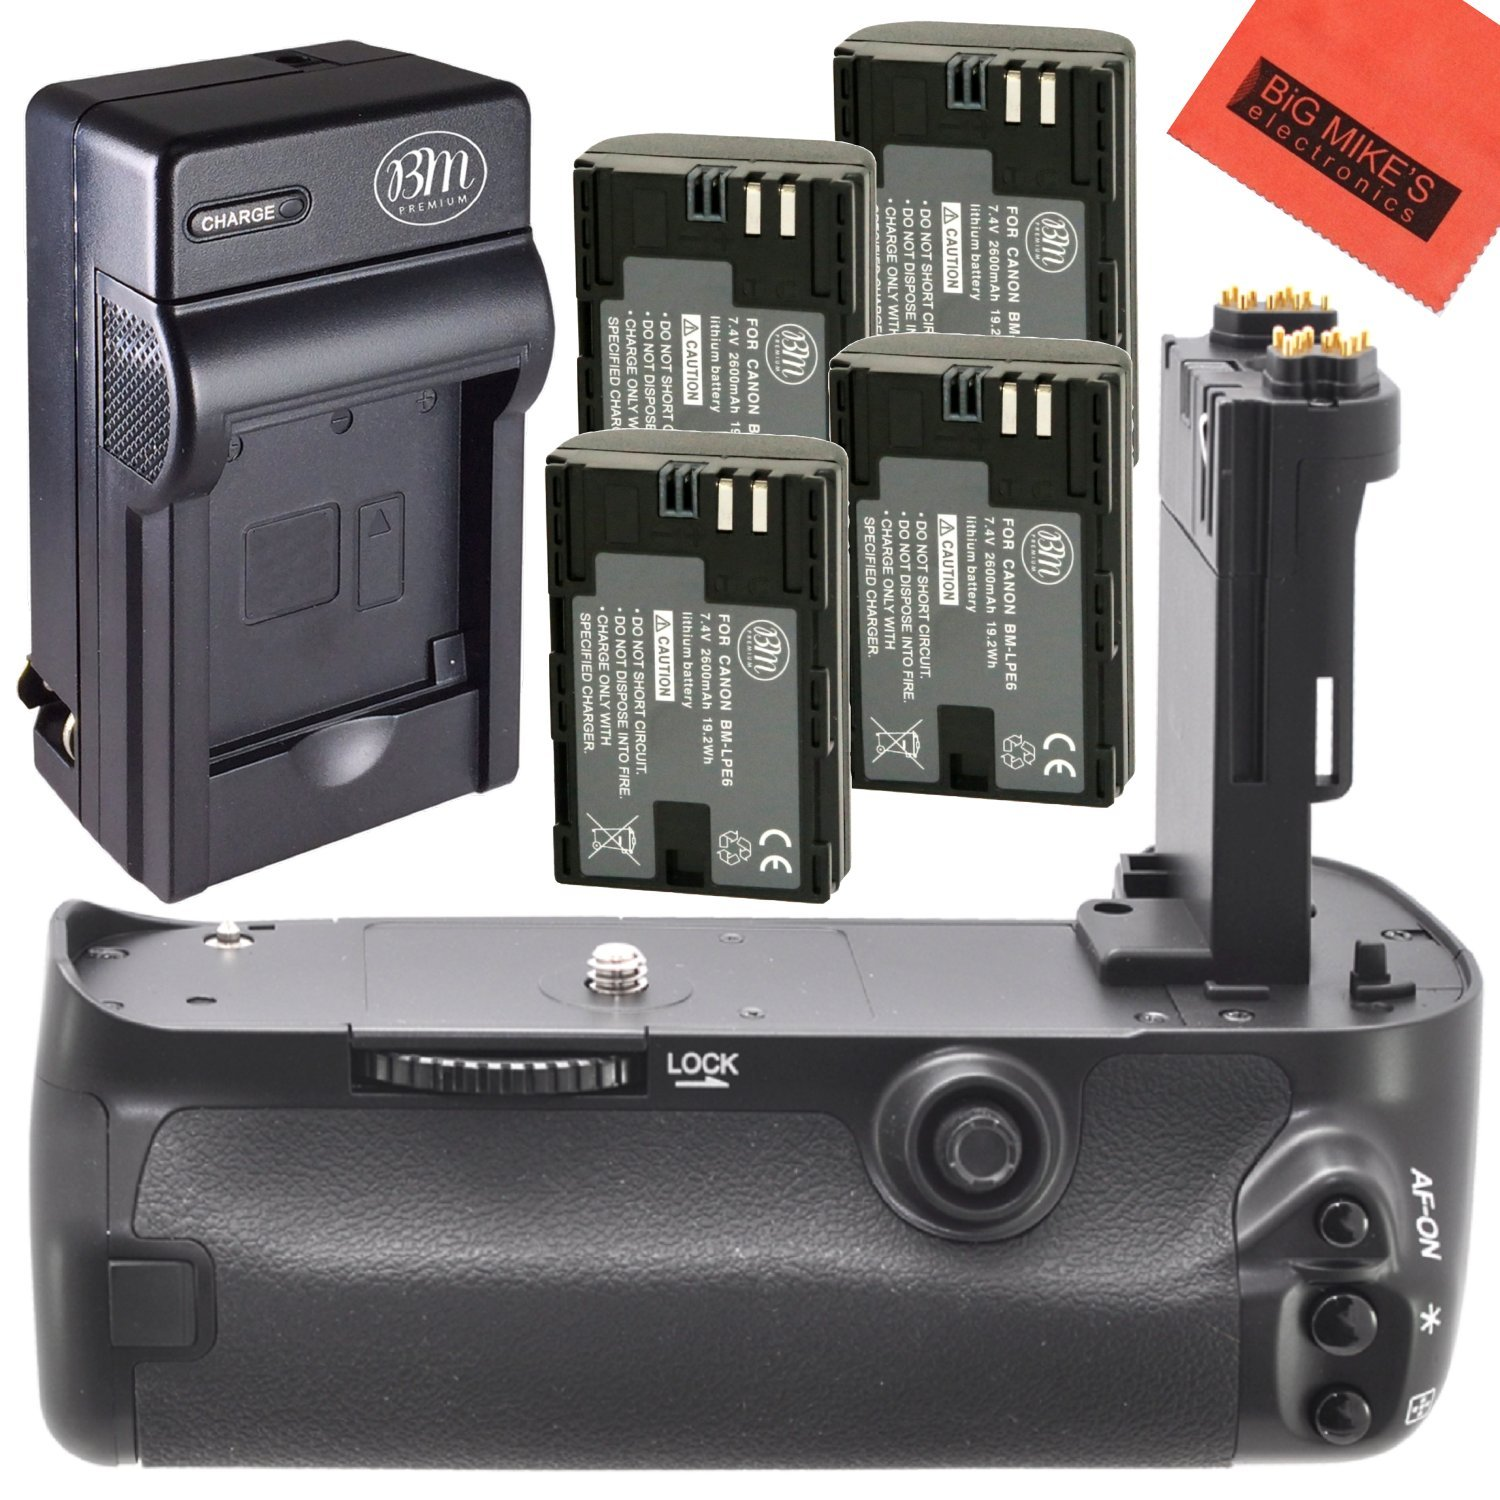 Battery Grip Kit for Canon EOS 5D Mark III, EOS 5DS, EOS 5DS R Digital SLR Camera Includes Vertical Battery Grip + Qty 4 Replacement LP-E6 Batteries + Rapid AC/DC Charger by Big Mike's